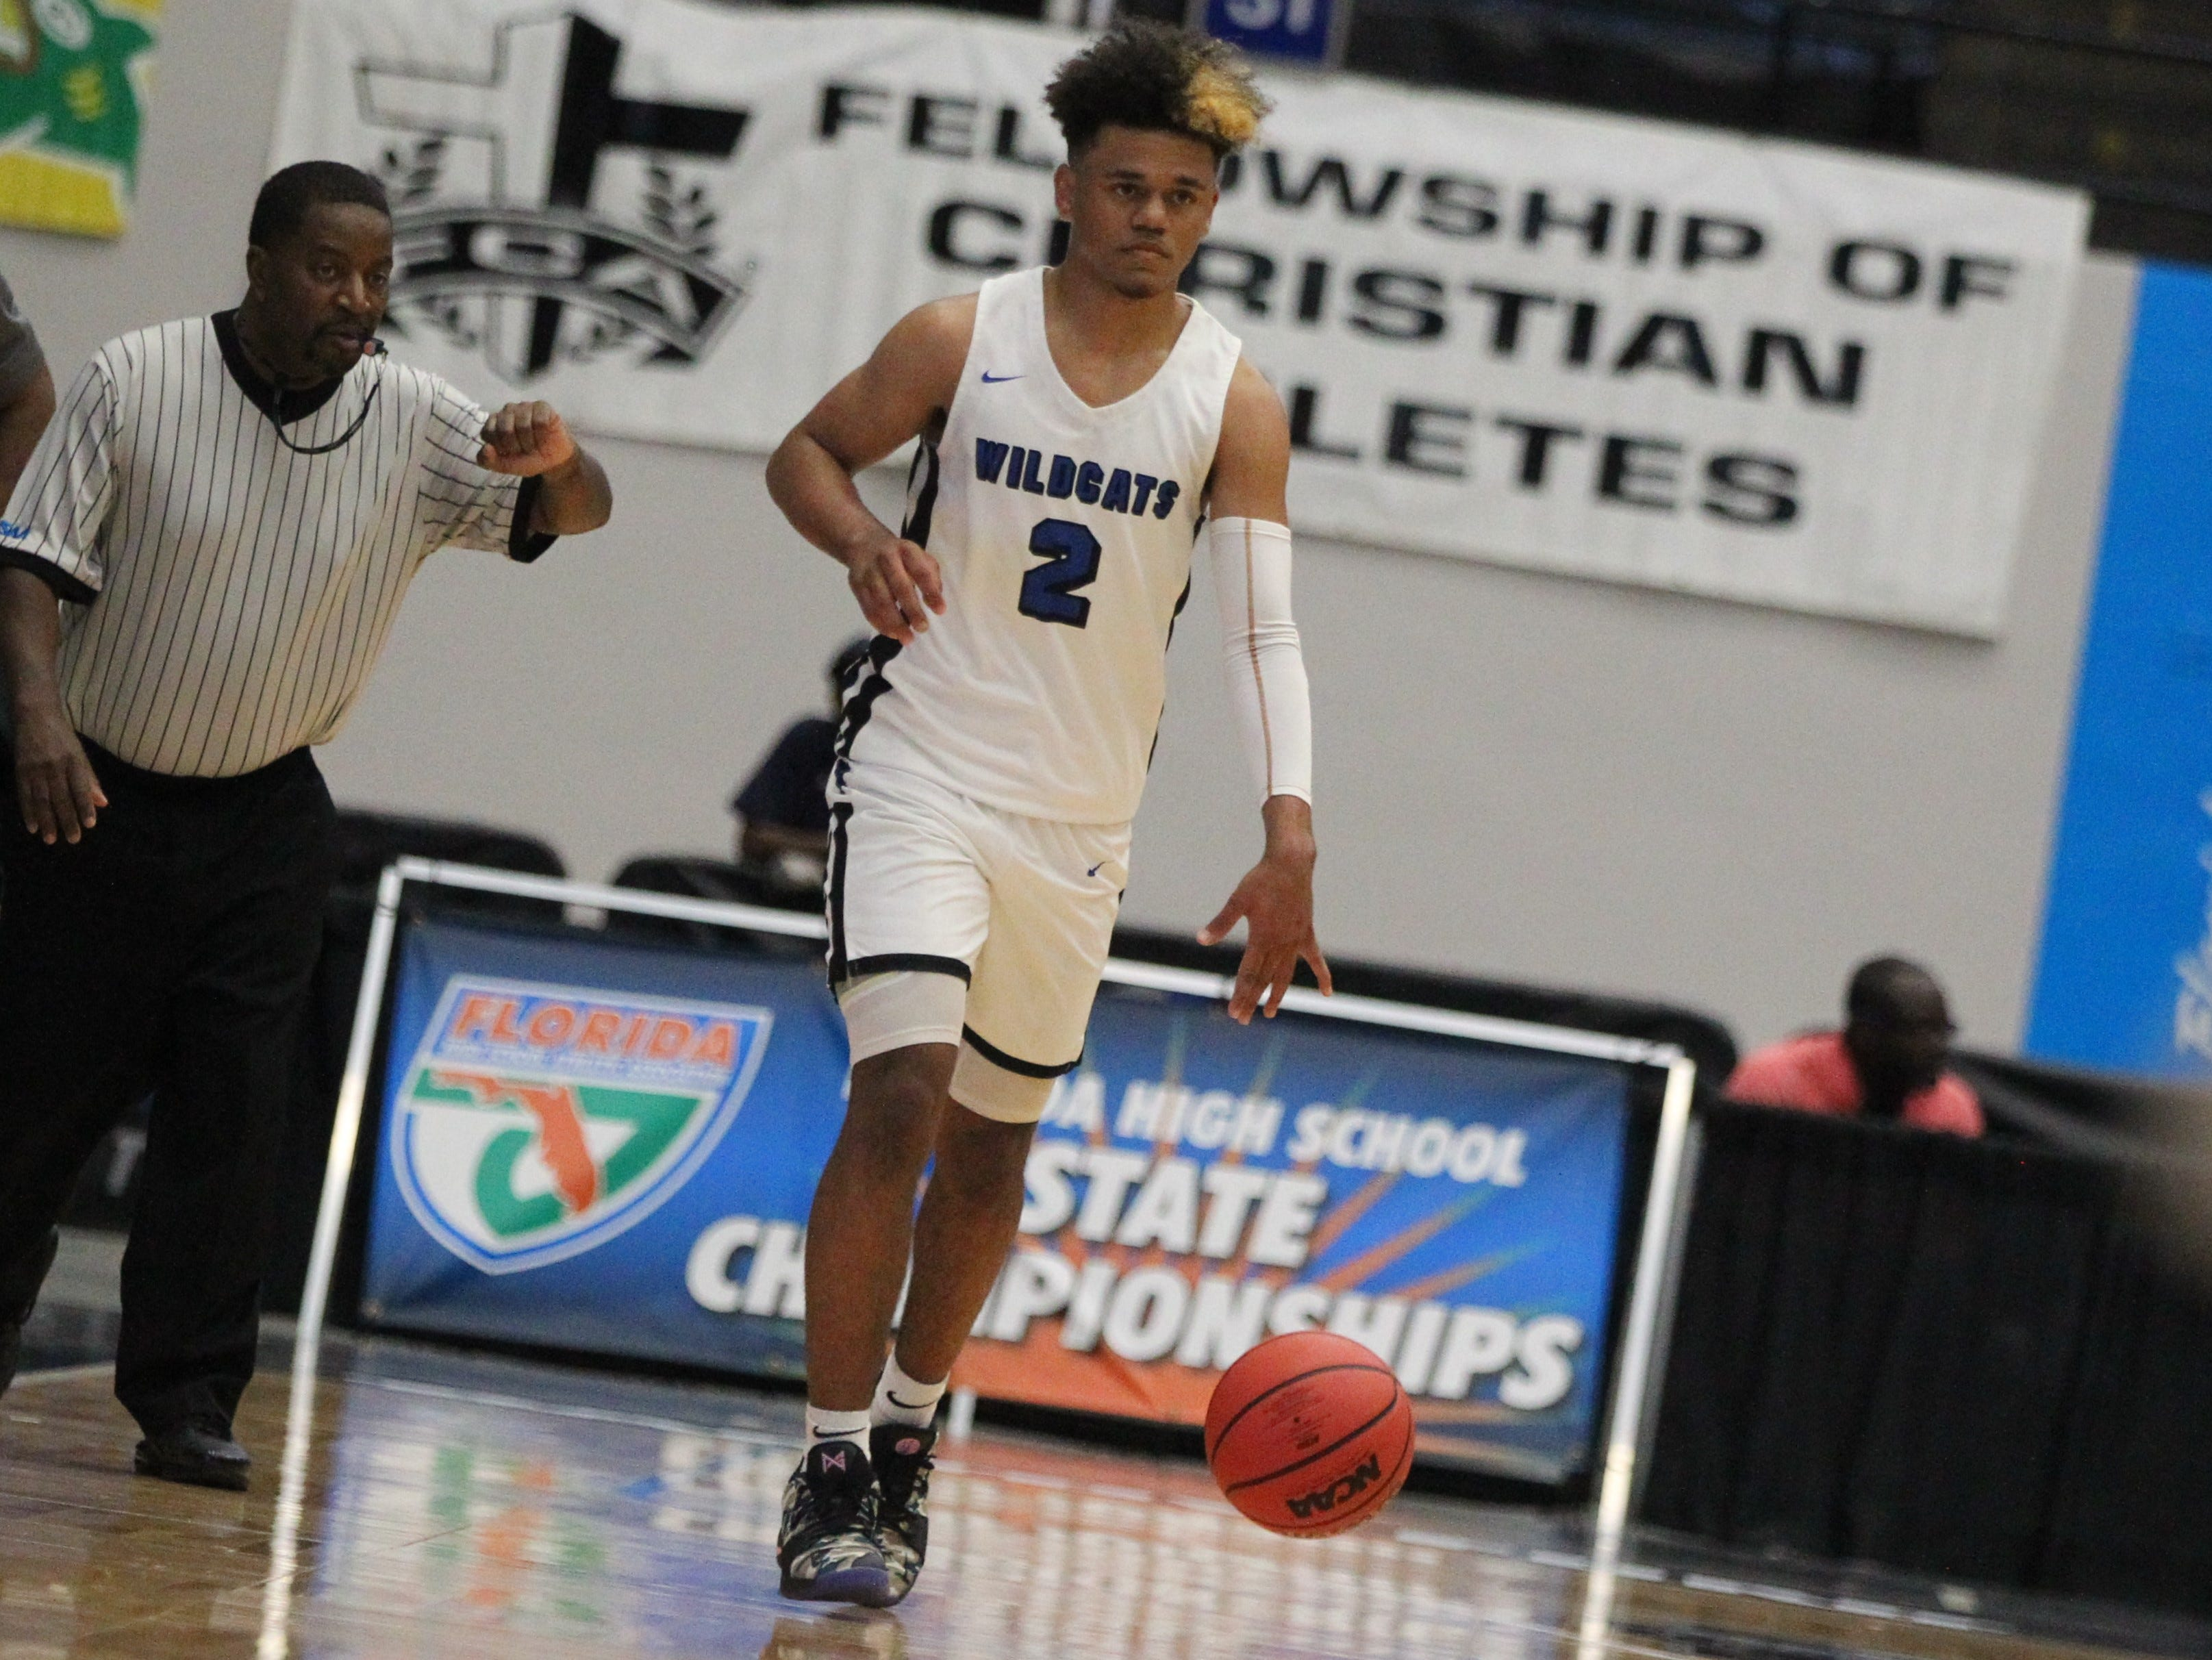 Franklin County lost 76-60 to Wildwood during a Class 1A state semifinal at the RP Funding Center in Lakeland on March 4, 2019.